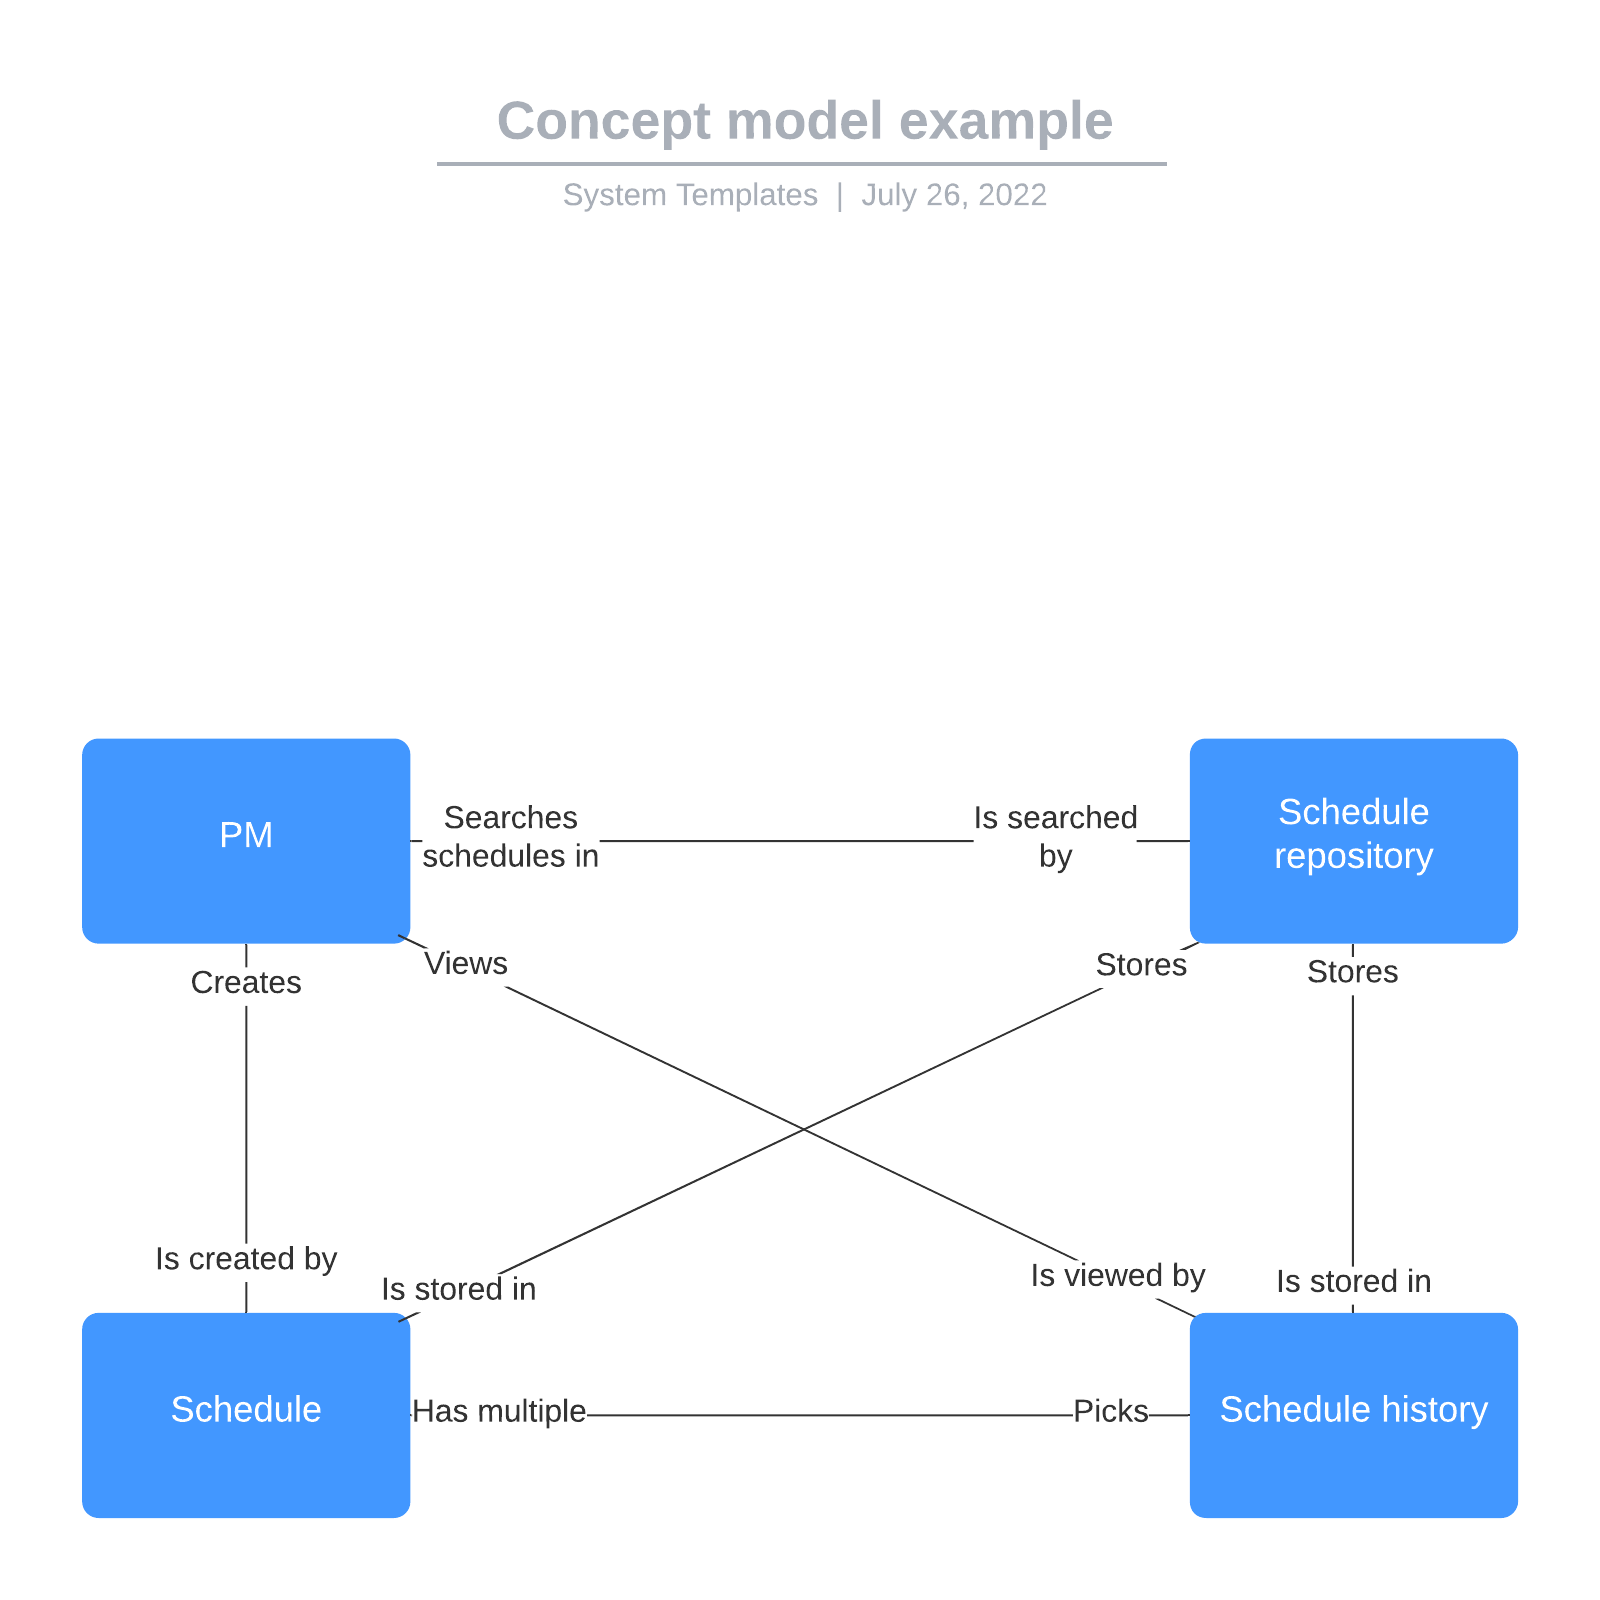 Concept model example